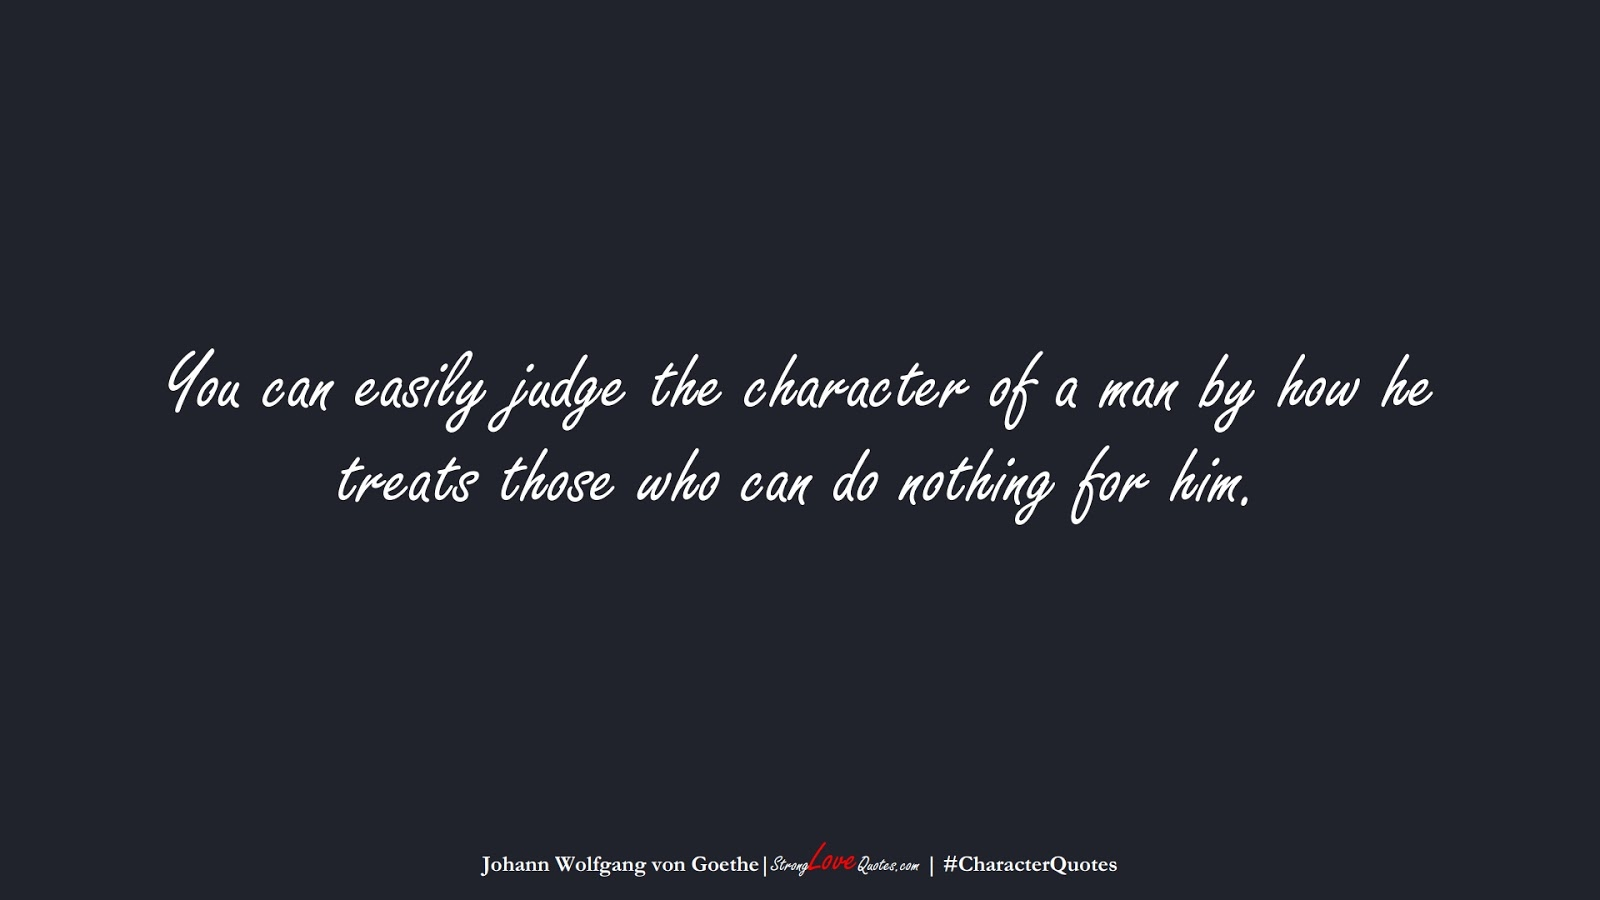 You can easily judge the character of a man by how he treats those who can do nothing for him. (Johann Wolfgang von Goethe);  #CharacterQuotes